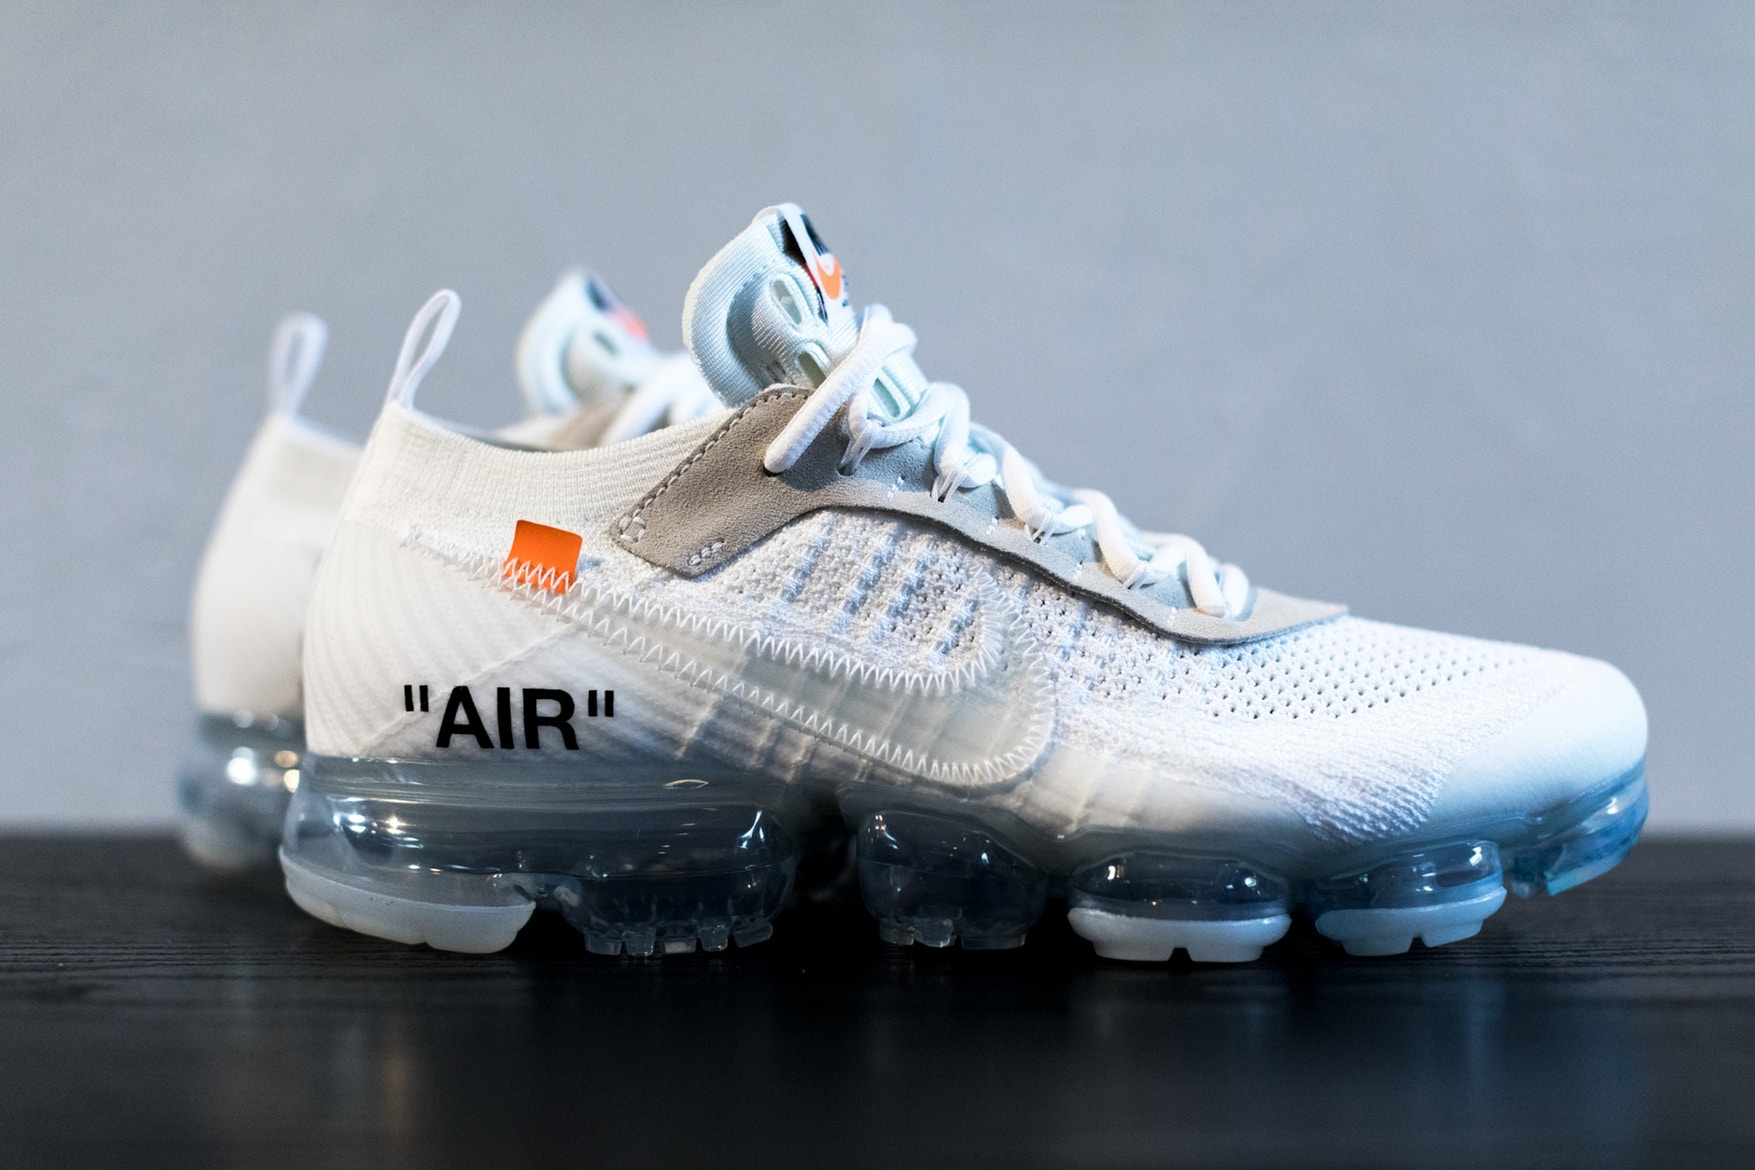 2f596cc69a8d2 sneakers-a-ne-pas-manquer-avril-2-nike-off-white-vapormax-white-adidas-yeezy-500-desert-rat-blush-converse-sneakersnstuff-6.jpg